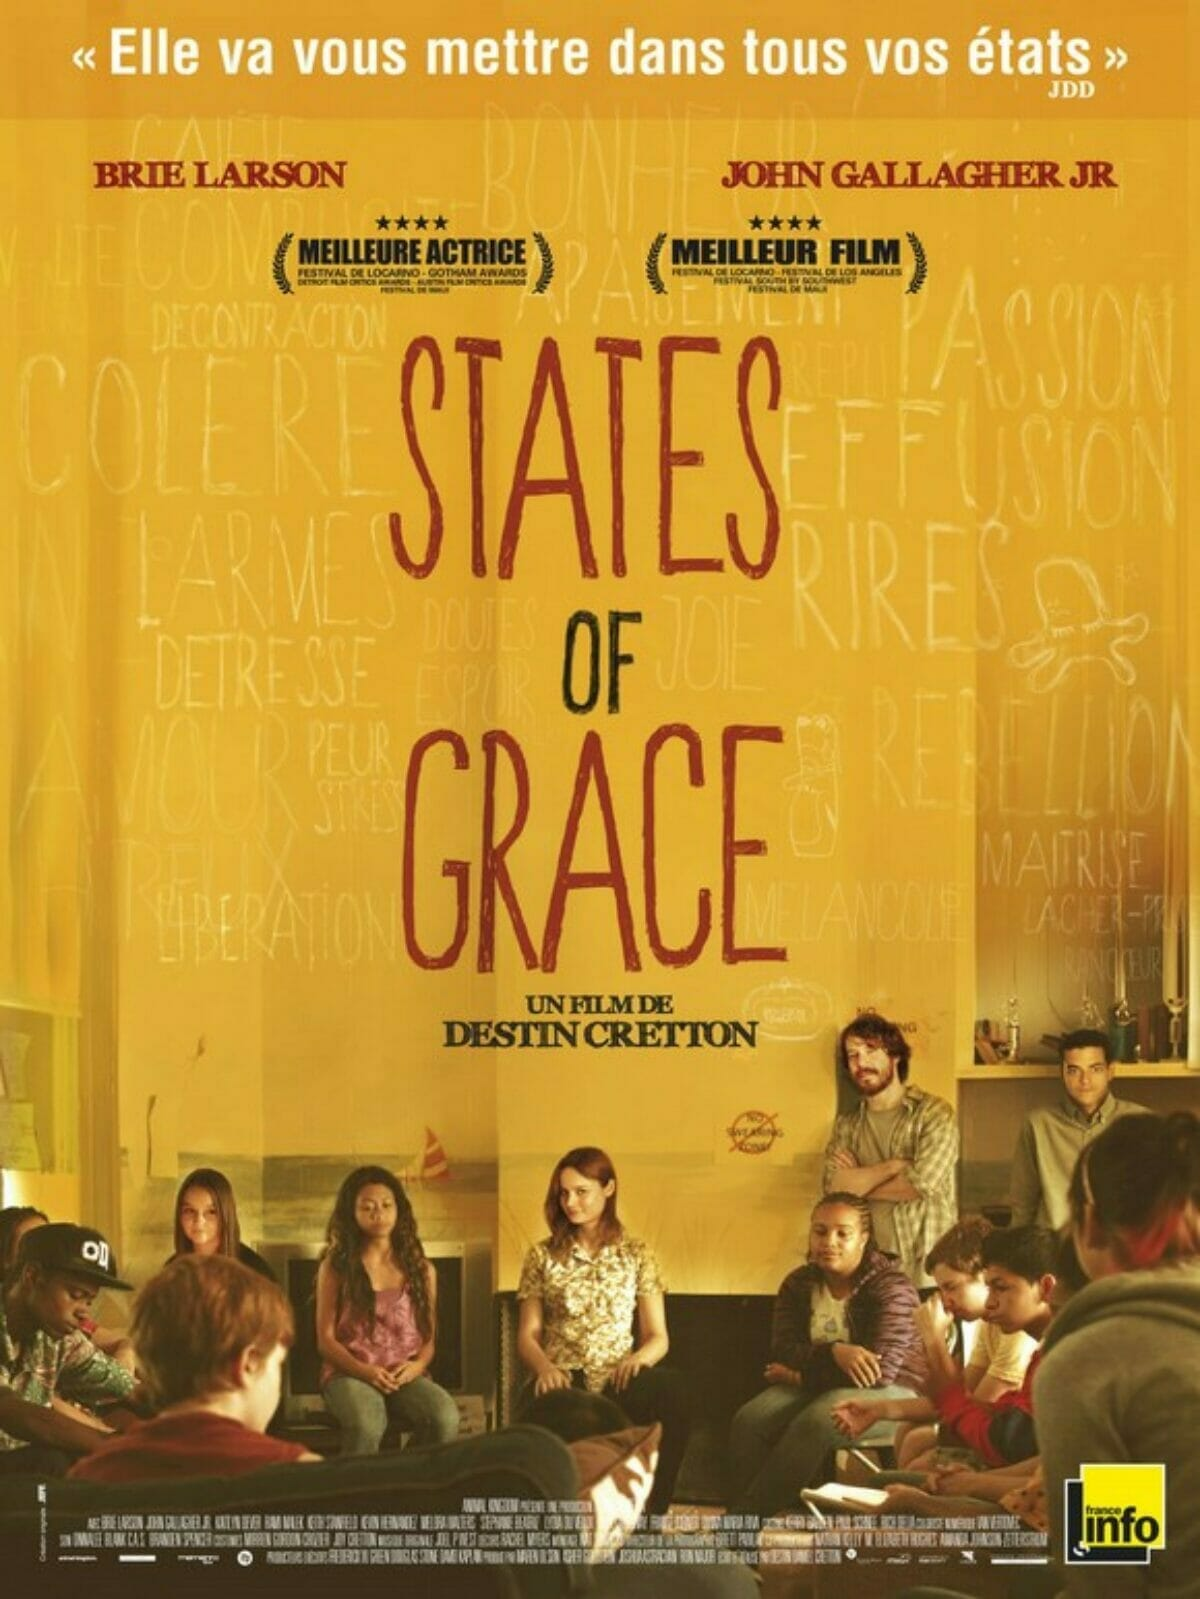 States-of-grace-affiche-france